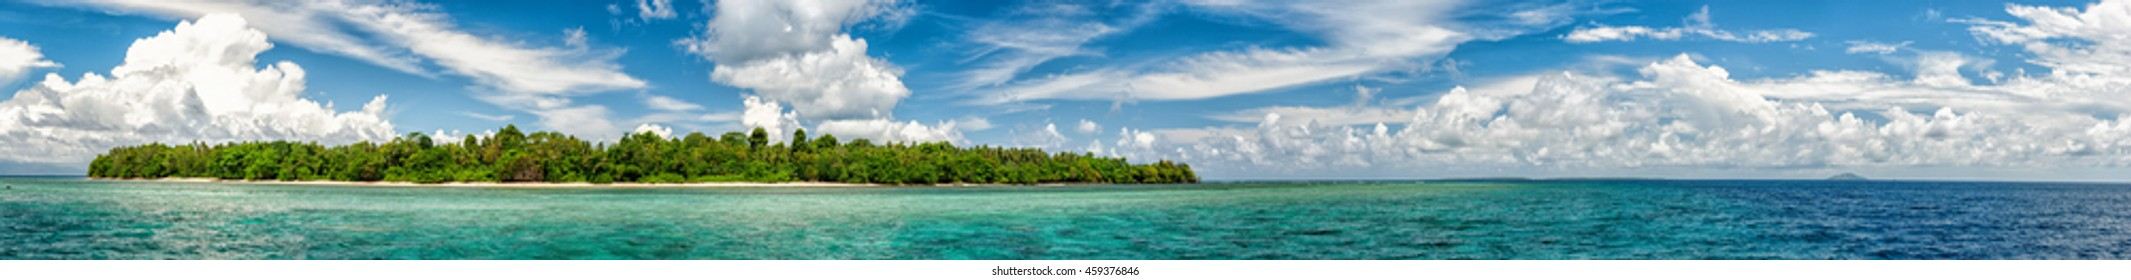 Siladen turquoise tropical paradise island in Indonesia landscape panorama